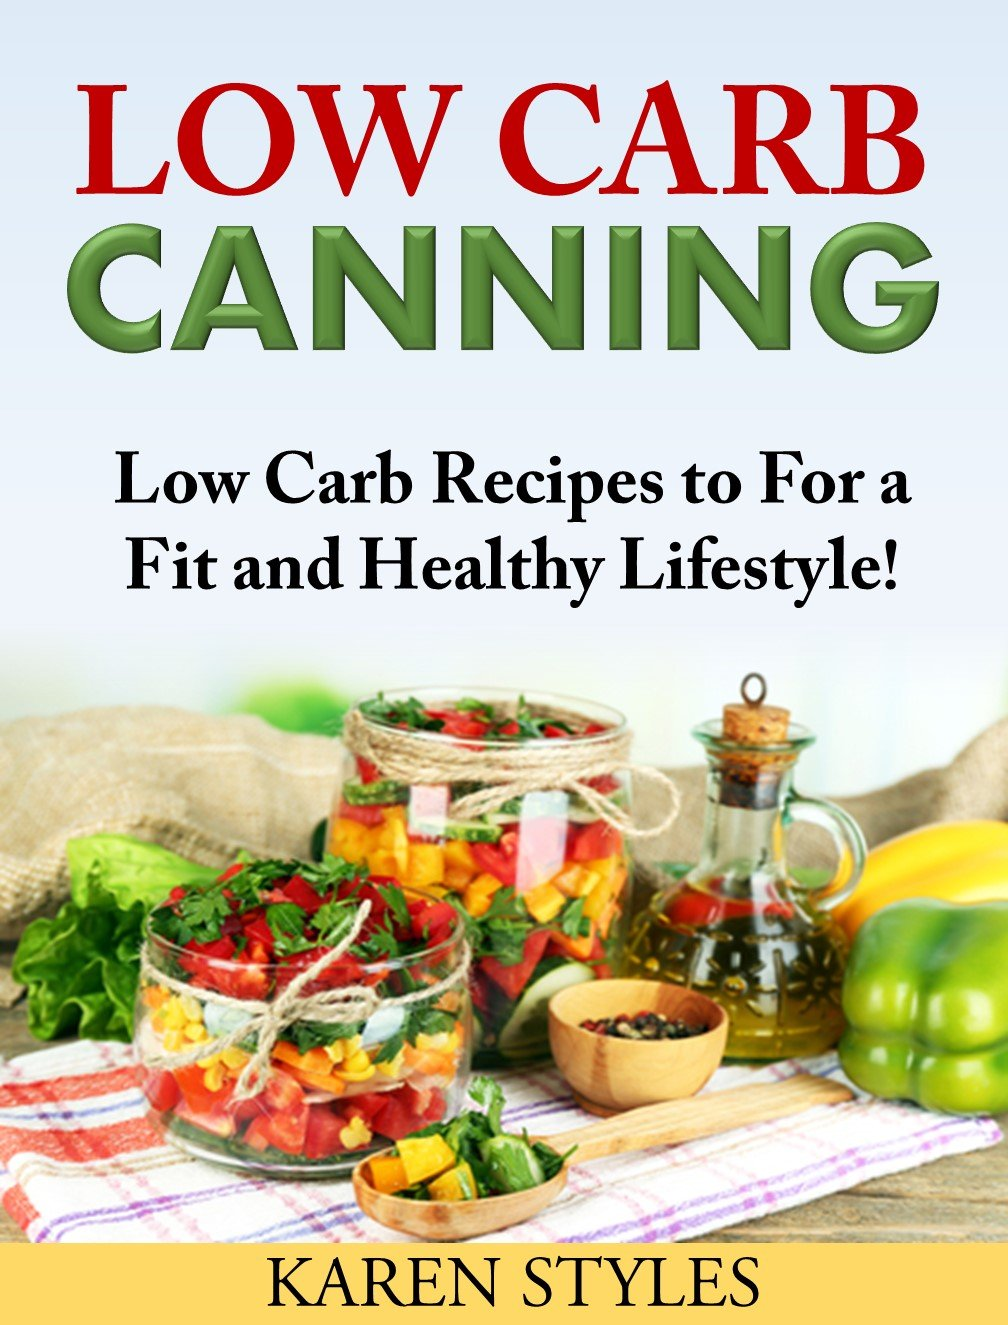 http://www.amazon.com/Low-Carb-Canning-Recipes-Lifestyle-ebook/dp/B00O1AAU6O/ref=as_sl_pc_ss_til?tag=lettfromahome-20&linkCode=w01&linkId=E5YAOXHCQBVAYKFD&creativeASIN=B00O1AAU6O